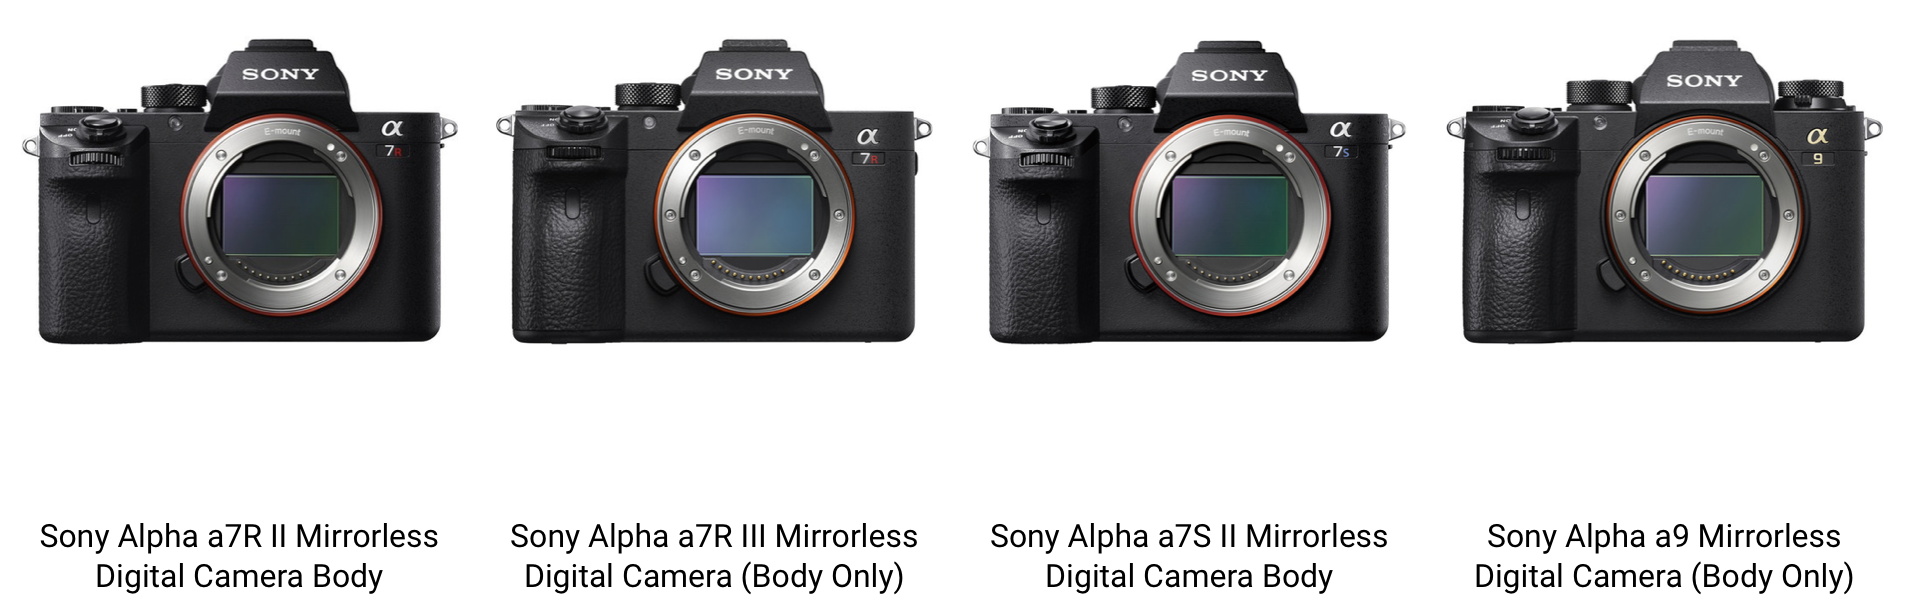 Sony Trade-in / Trade-up Event – B&C Camera